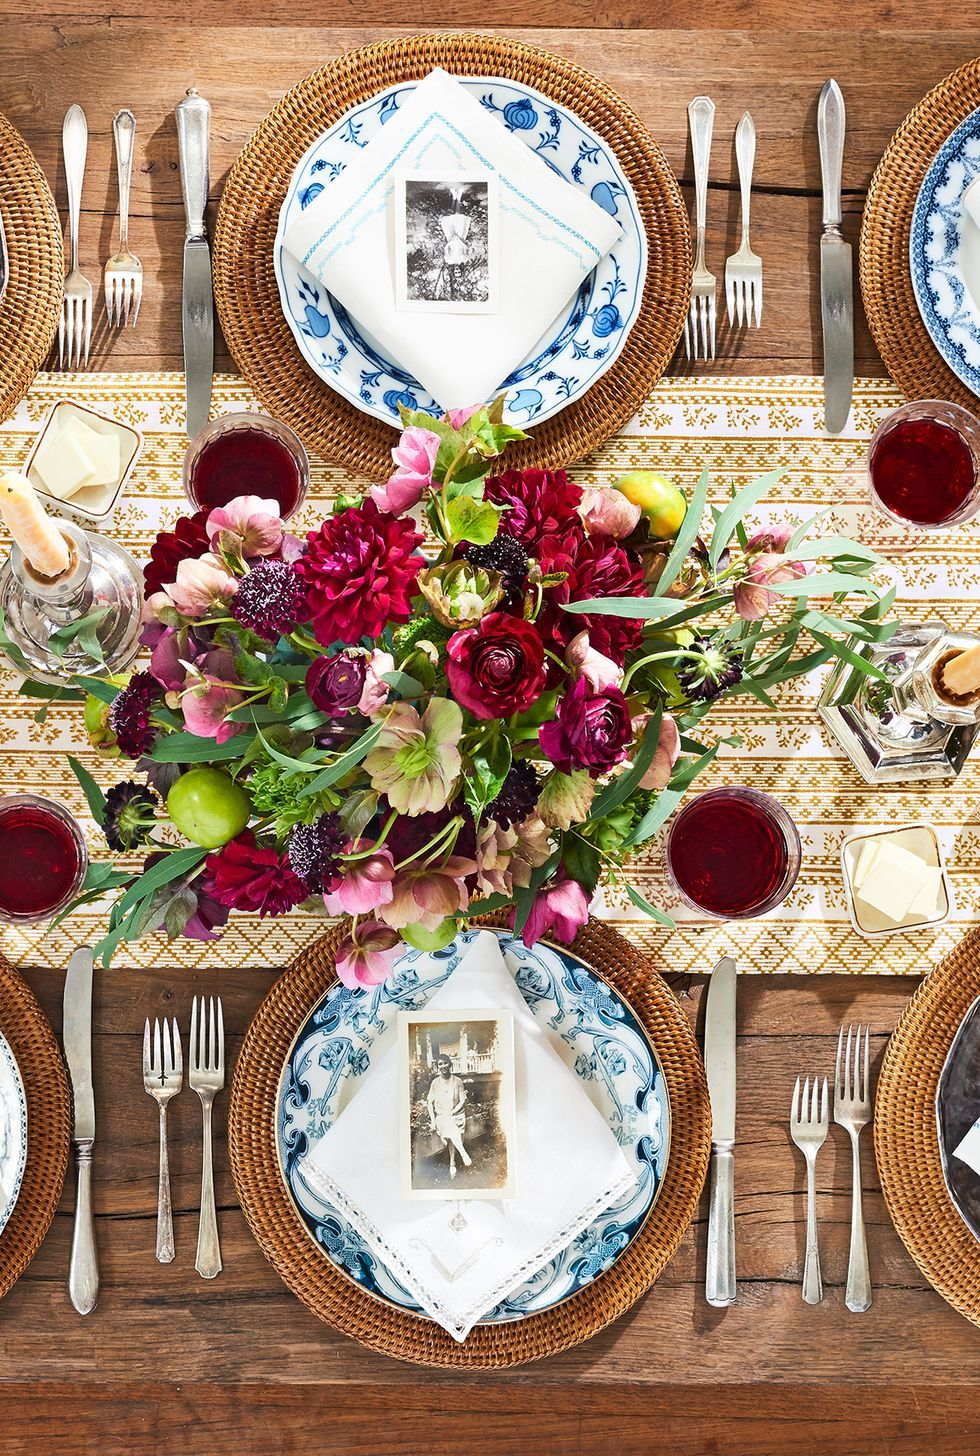 60 Diy Thanksgiving Table Setting Ideas Table Décor And Place Settings For Thanksgiving